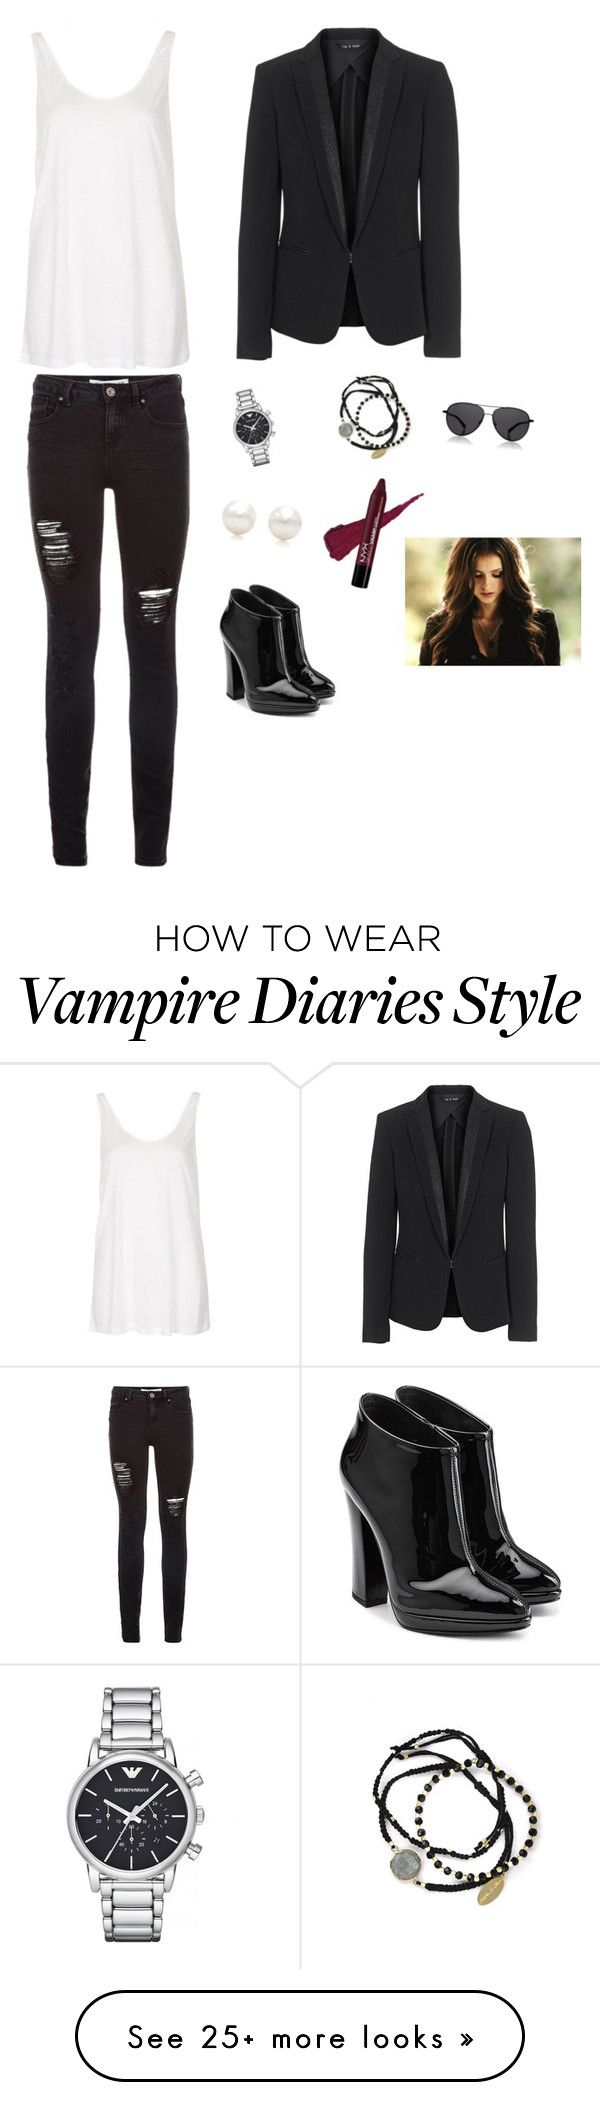 """""""Untitled #767"""" by francyrizzo on Polyvore featuring Topshop, rag & bone, Emporio Armani, Feather & Stone, The Row, Tiffany & Co. and Giuseppe Zanotti"""